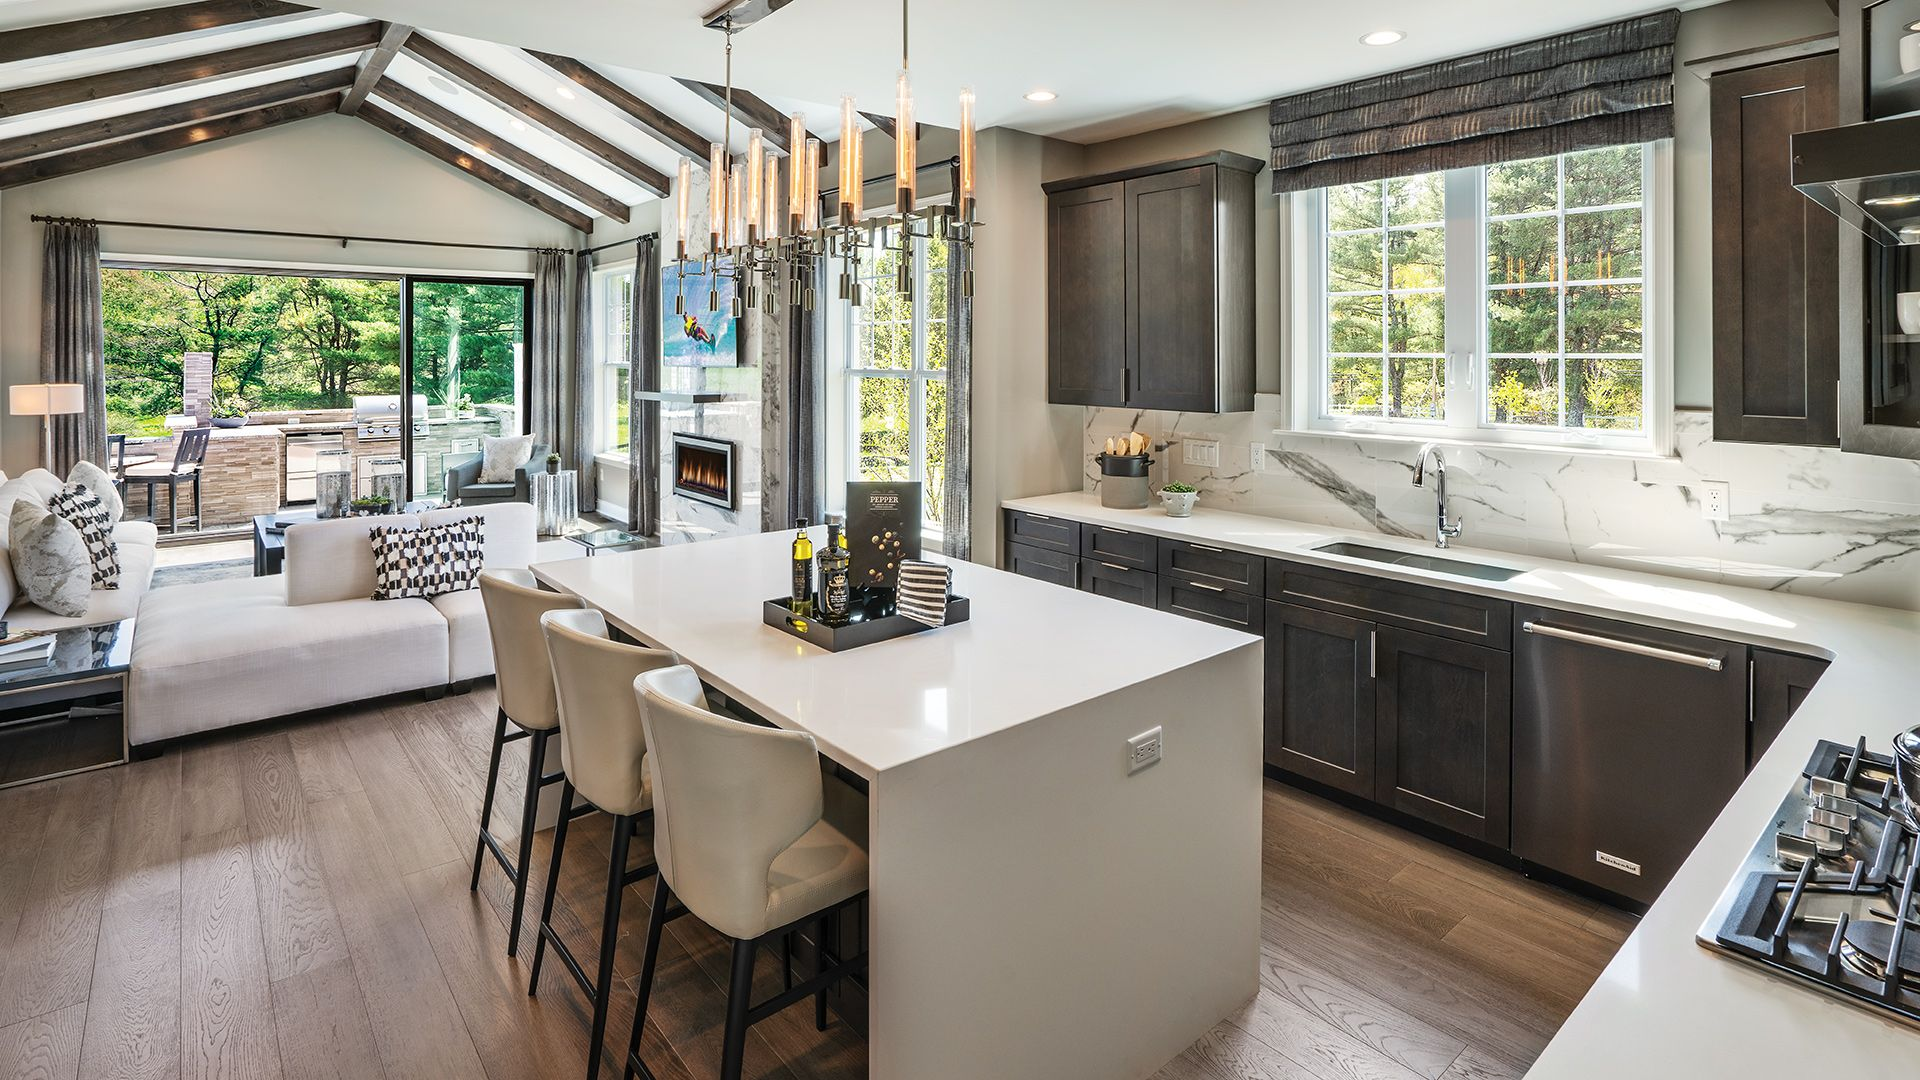 Toll Brothers Kitchen Strathmere Wellesley Google Search Traditional Kitchen Design Luxury Homes Model Homes